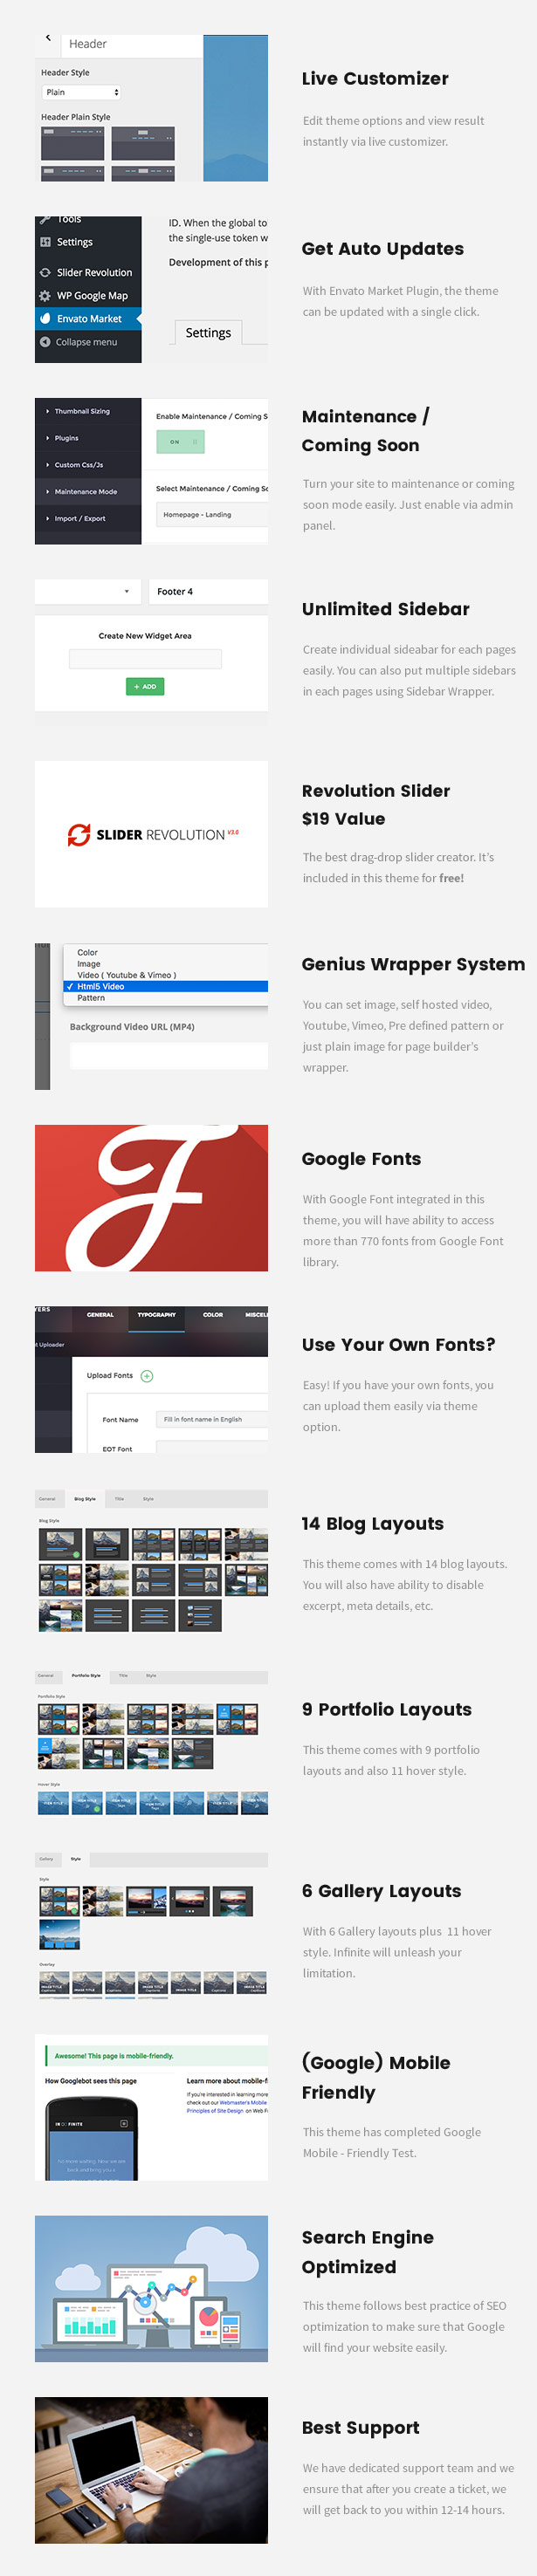 Inteco - Interior & Architecture WordPress Theme - 10